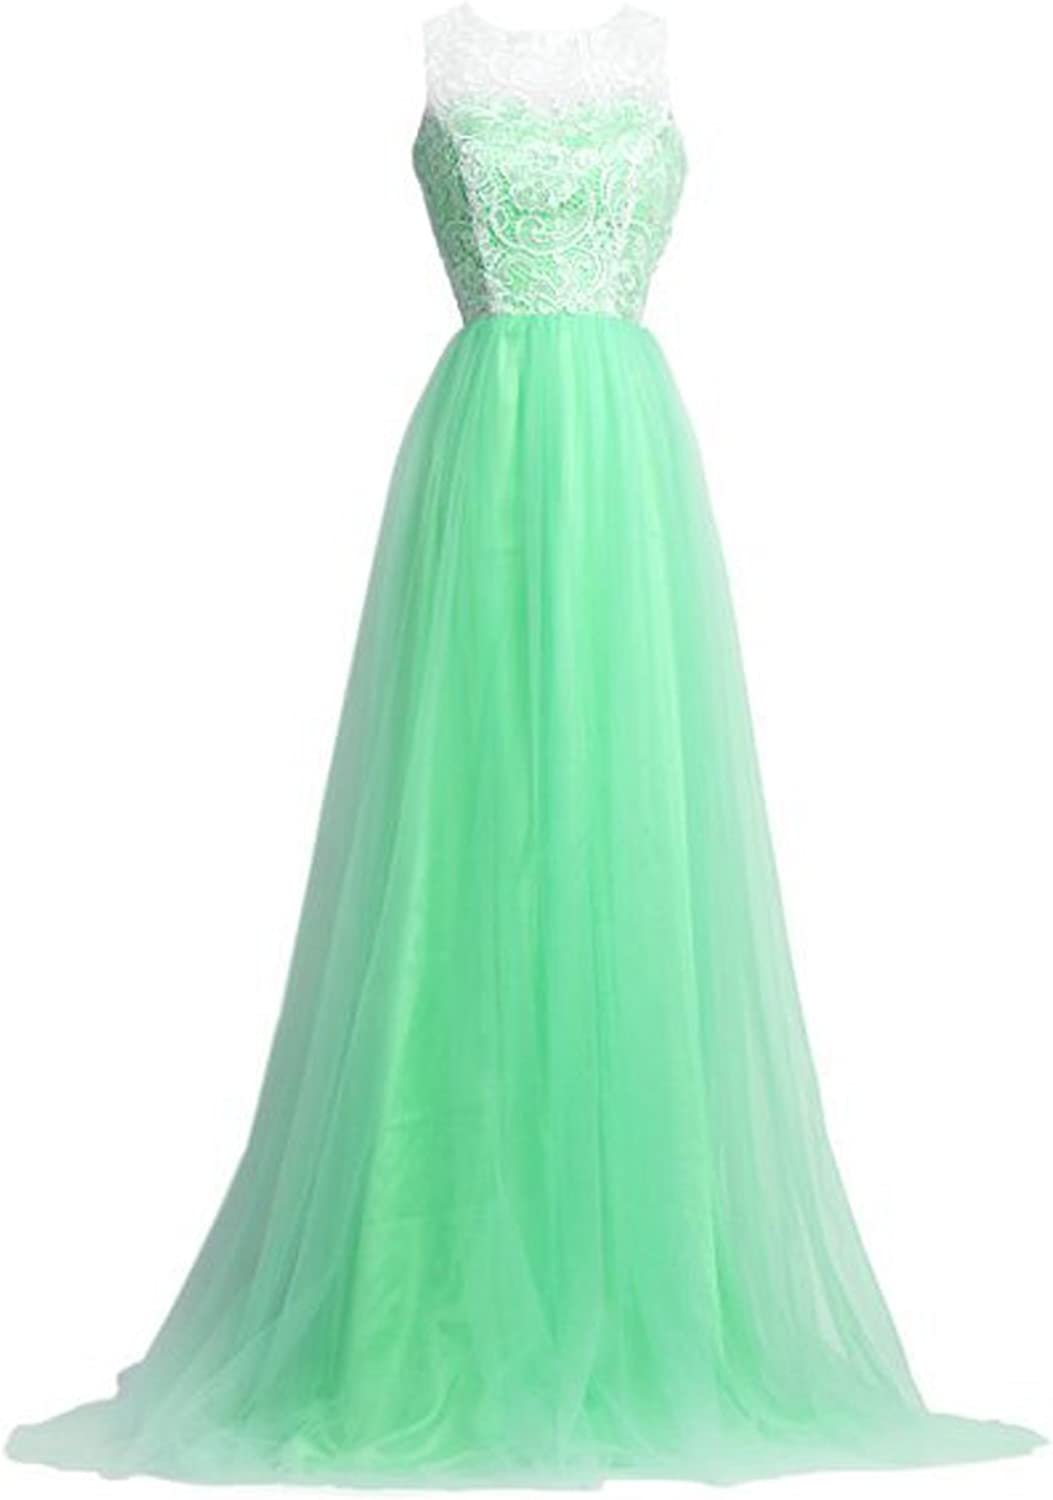 Maiqi Ball Gown Puffy Tulle and Lace Hollow Back Long Evening Party Gown US 8 Green